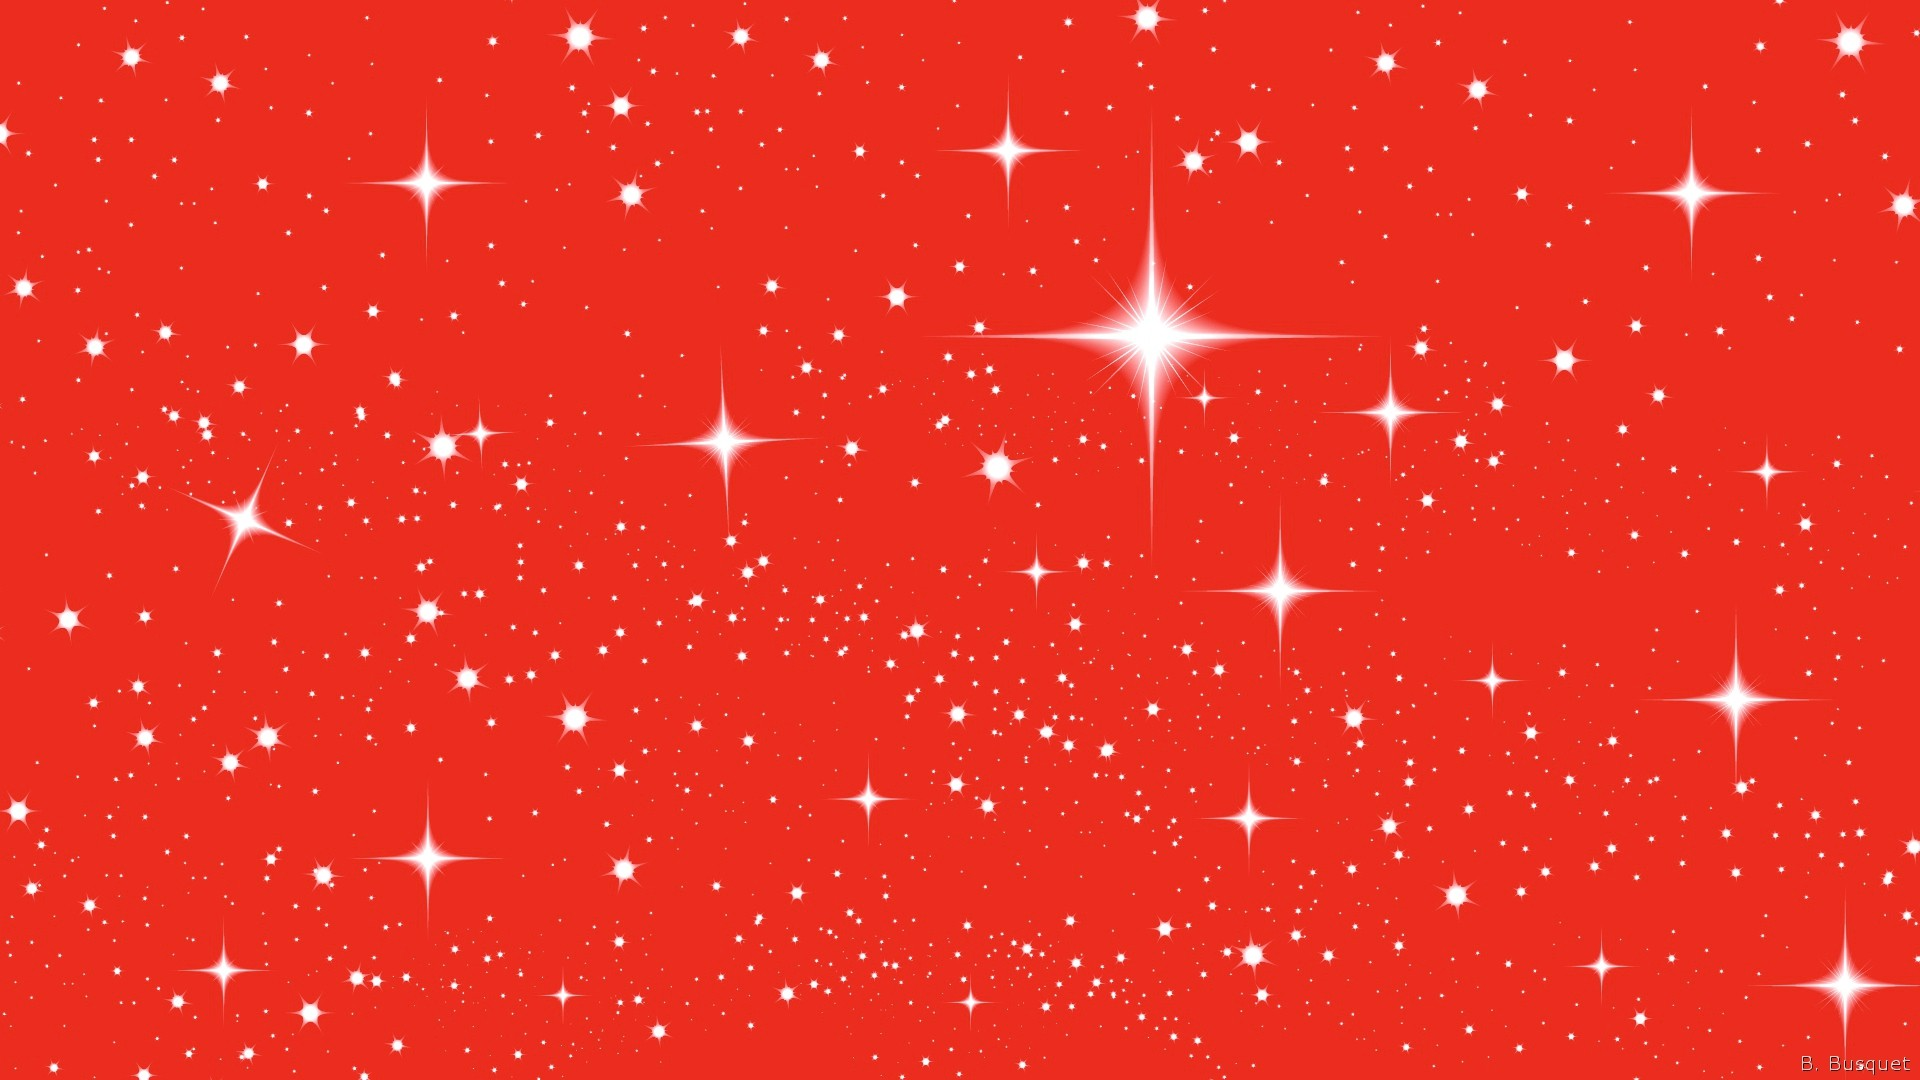 red star background - photo #26